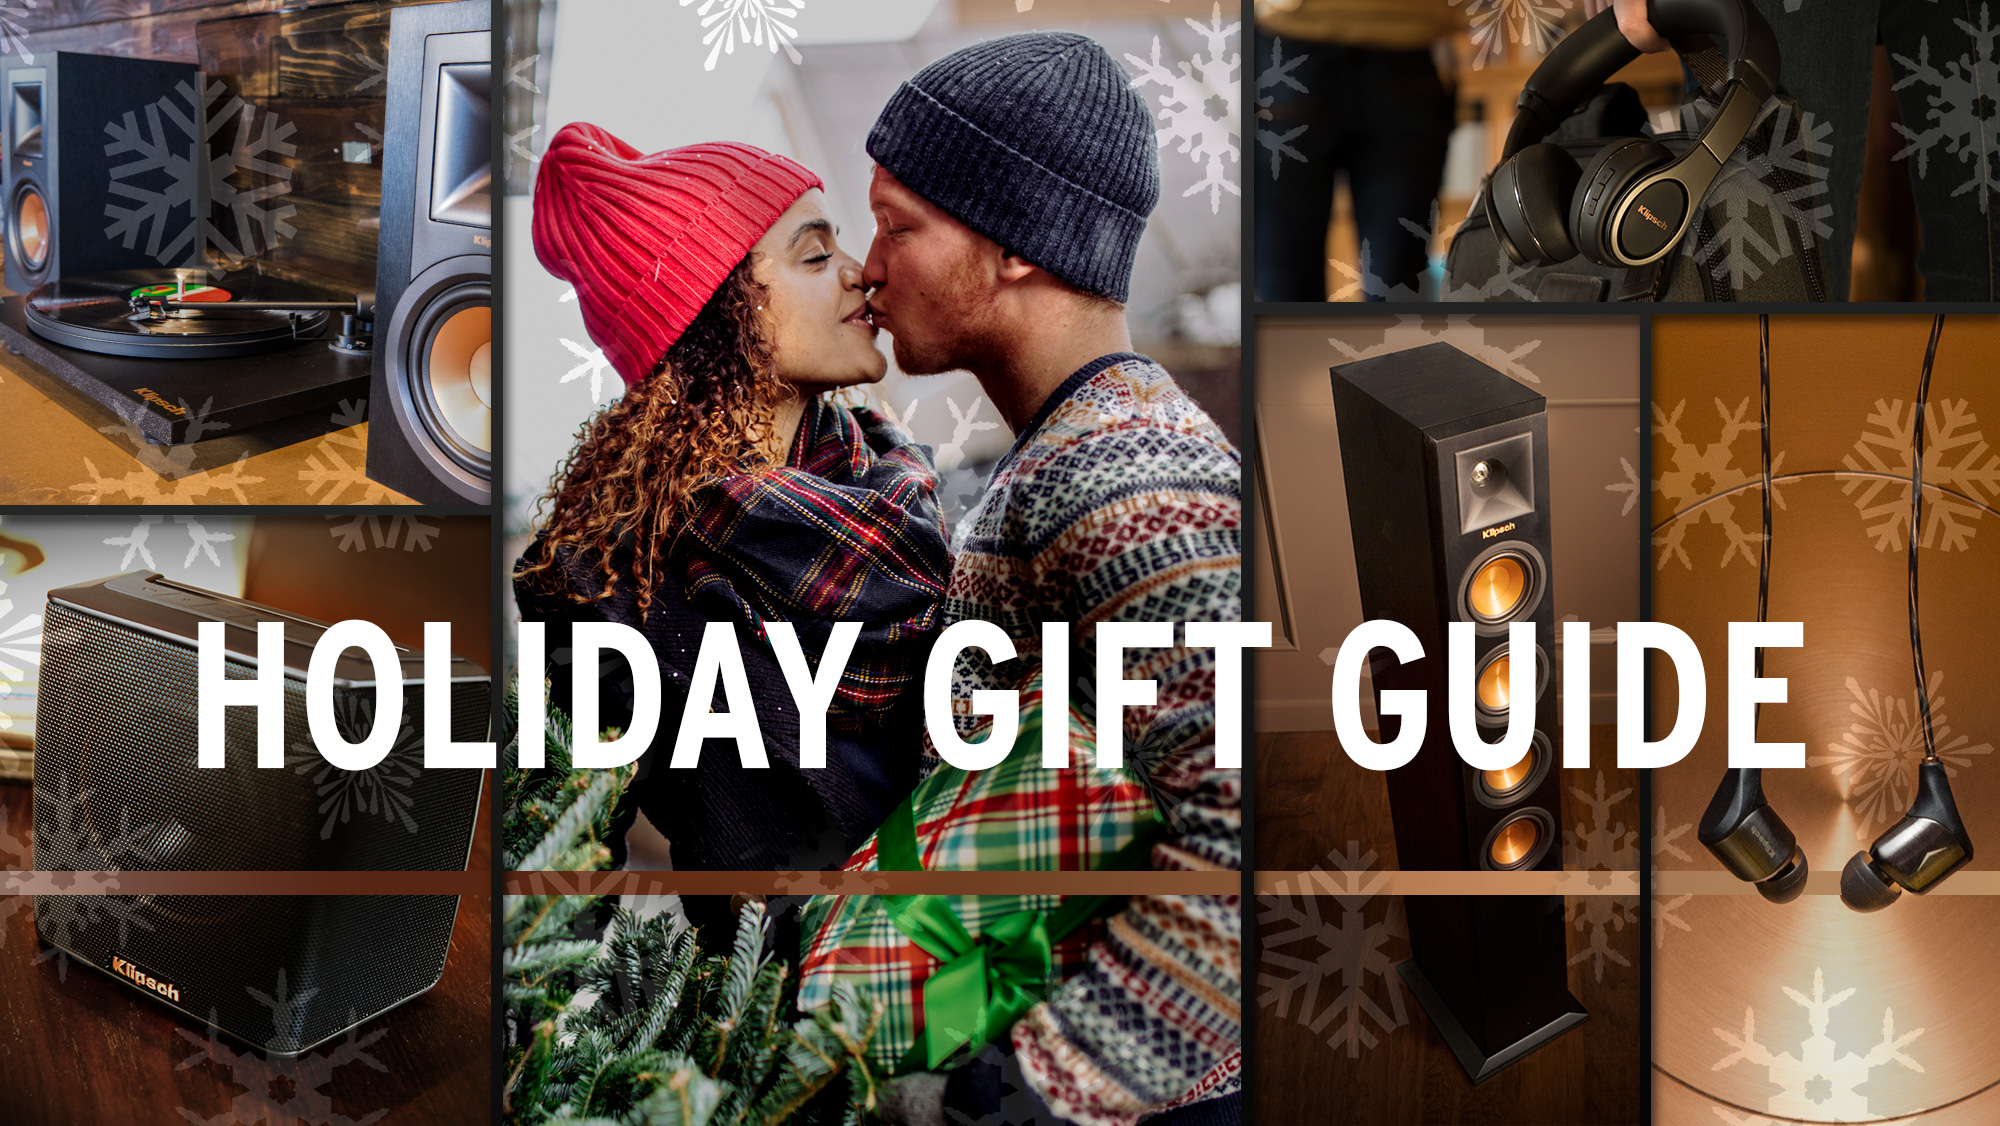 Klipsch Holiday Gift Guide Hero 2017